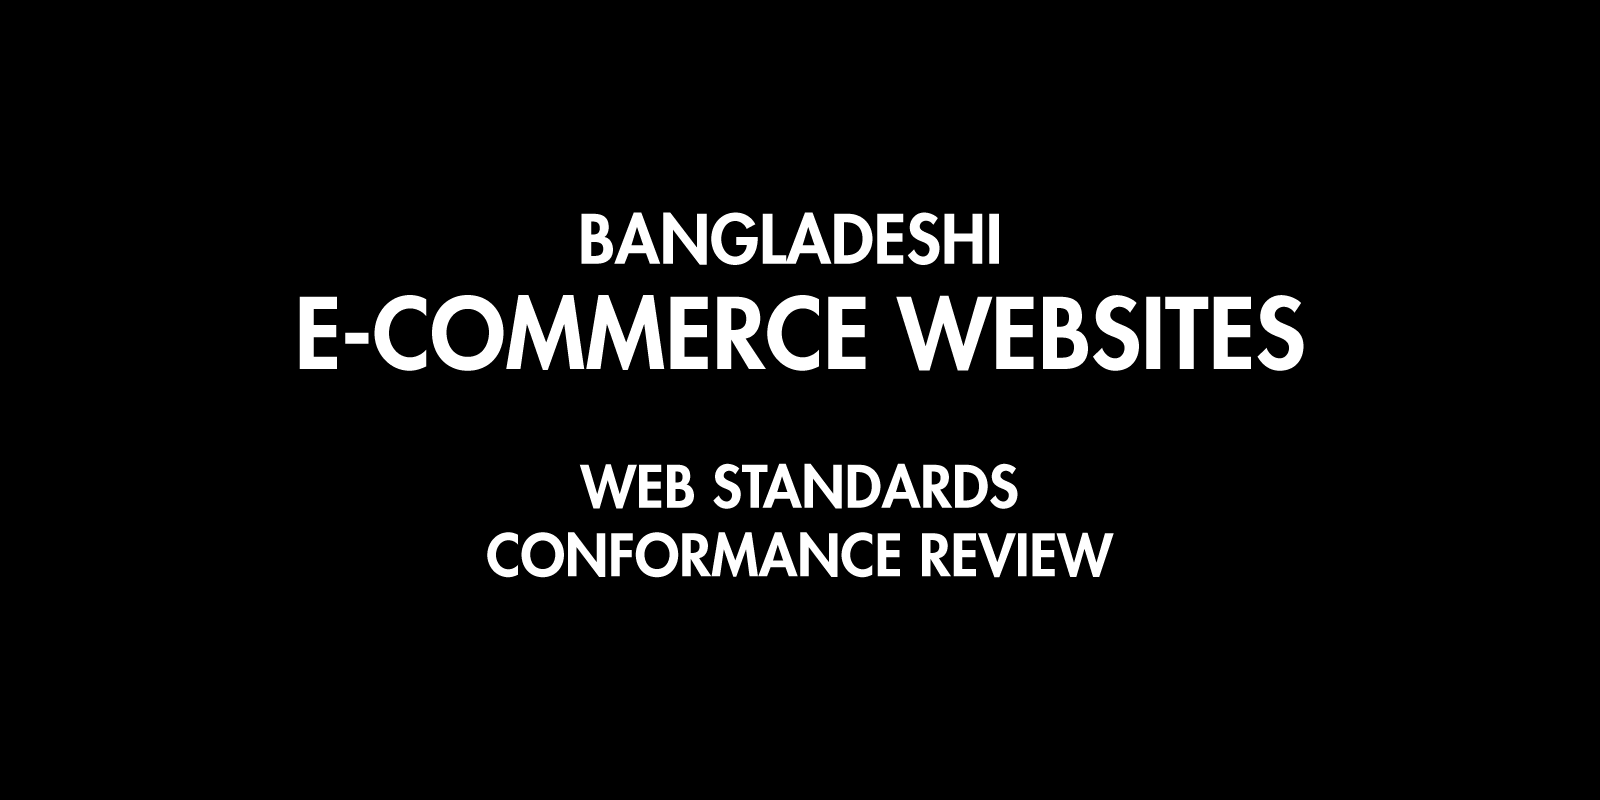 Web Standard Review